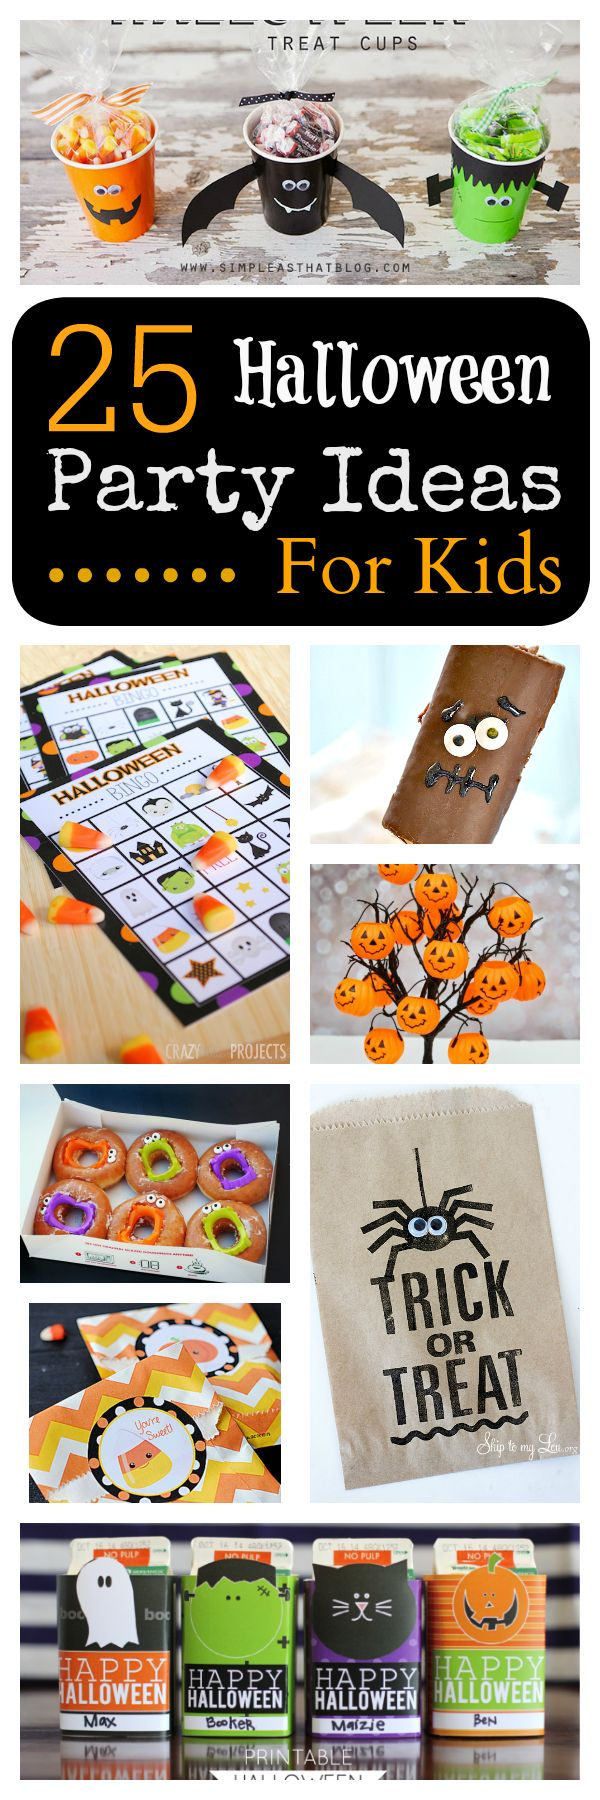 1369 best Celebrate: Halloween images on Pinterest